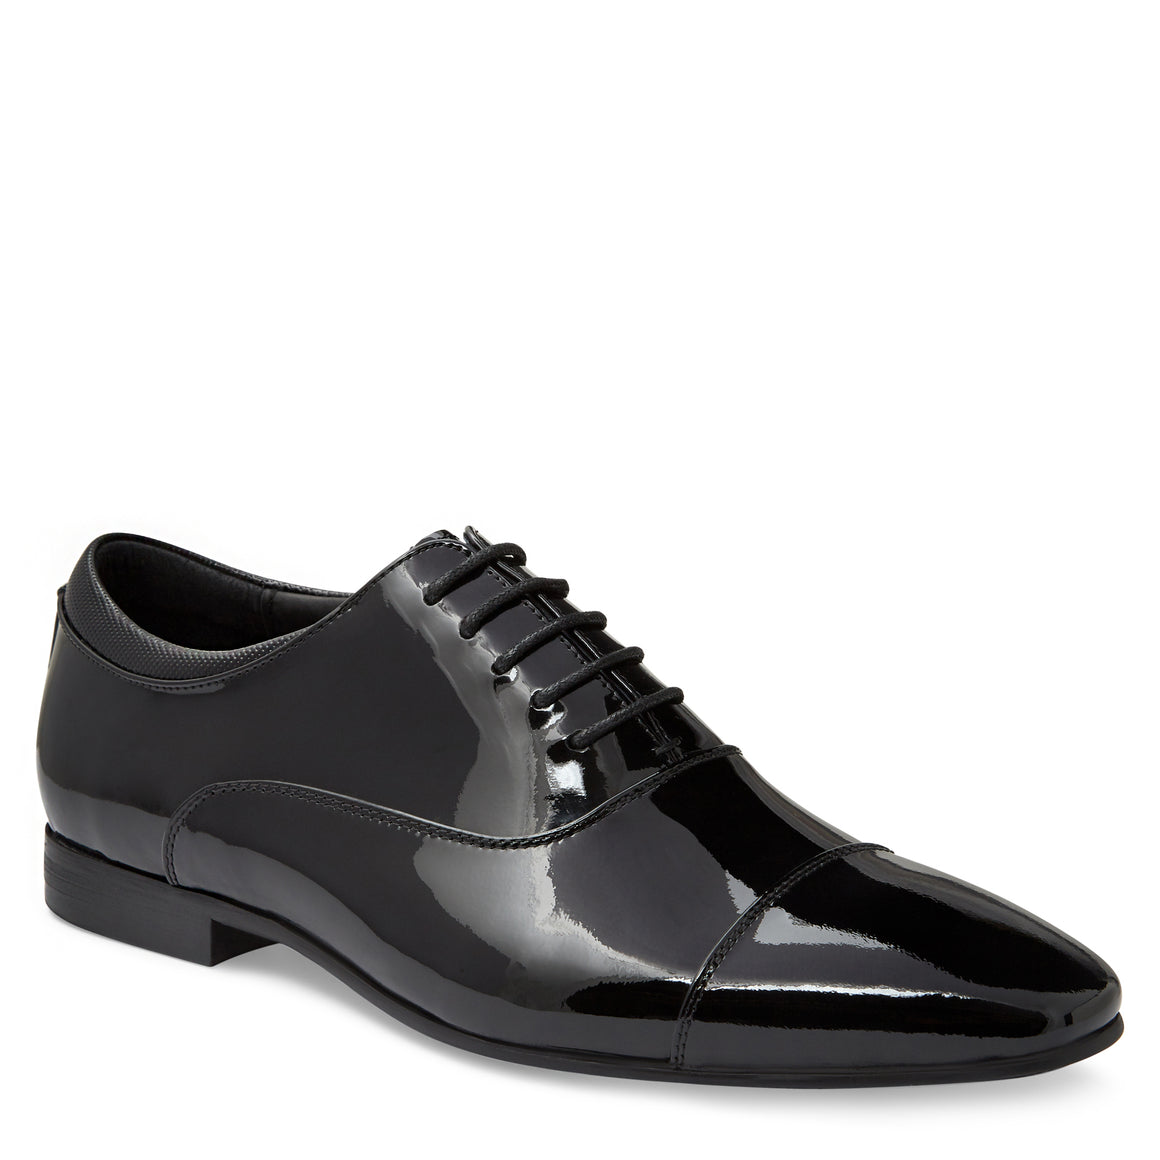 Astaire Black Patent Oxford Shoes